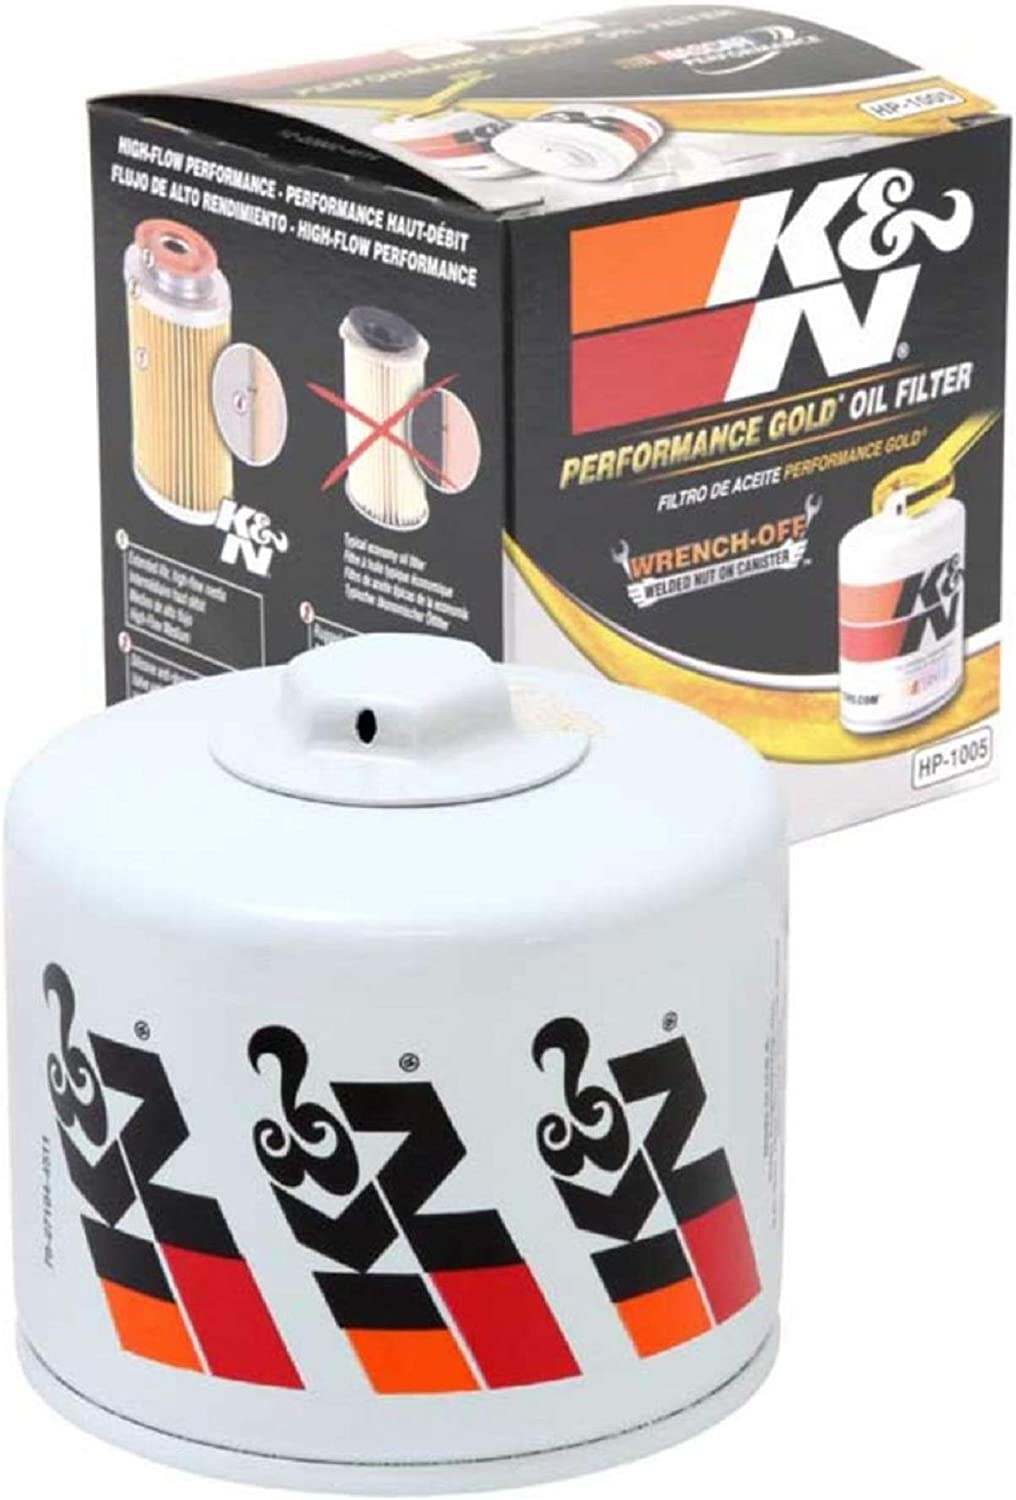 K&N Premium Oil Filter: Designed to Protect your Engine: Fits Select EAGLE/MITSUBISHI/DODGE/PLYMOUTH Vehicle Models (See Product Description for Full List of Compatible Vehicles), HP-1005